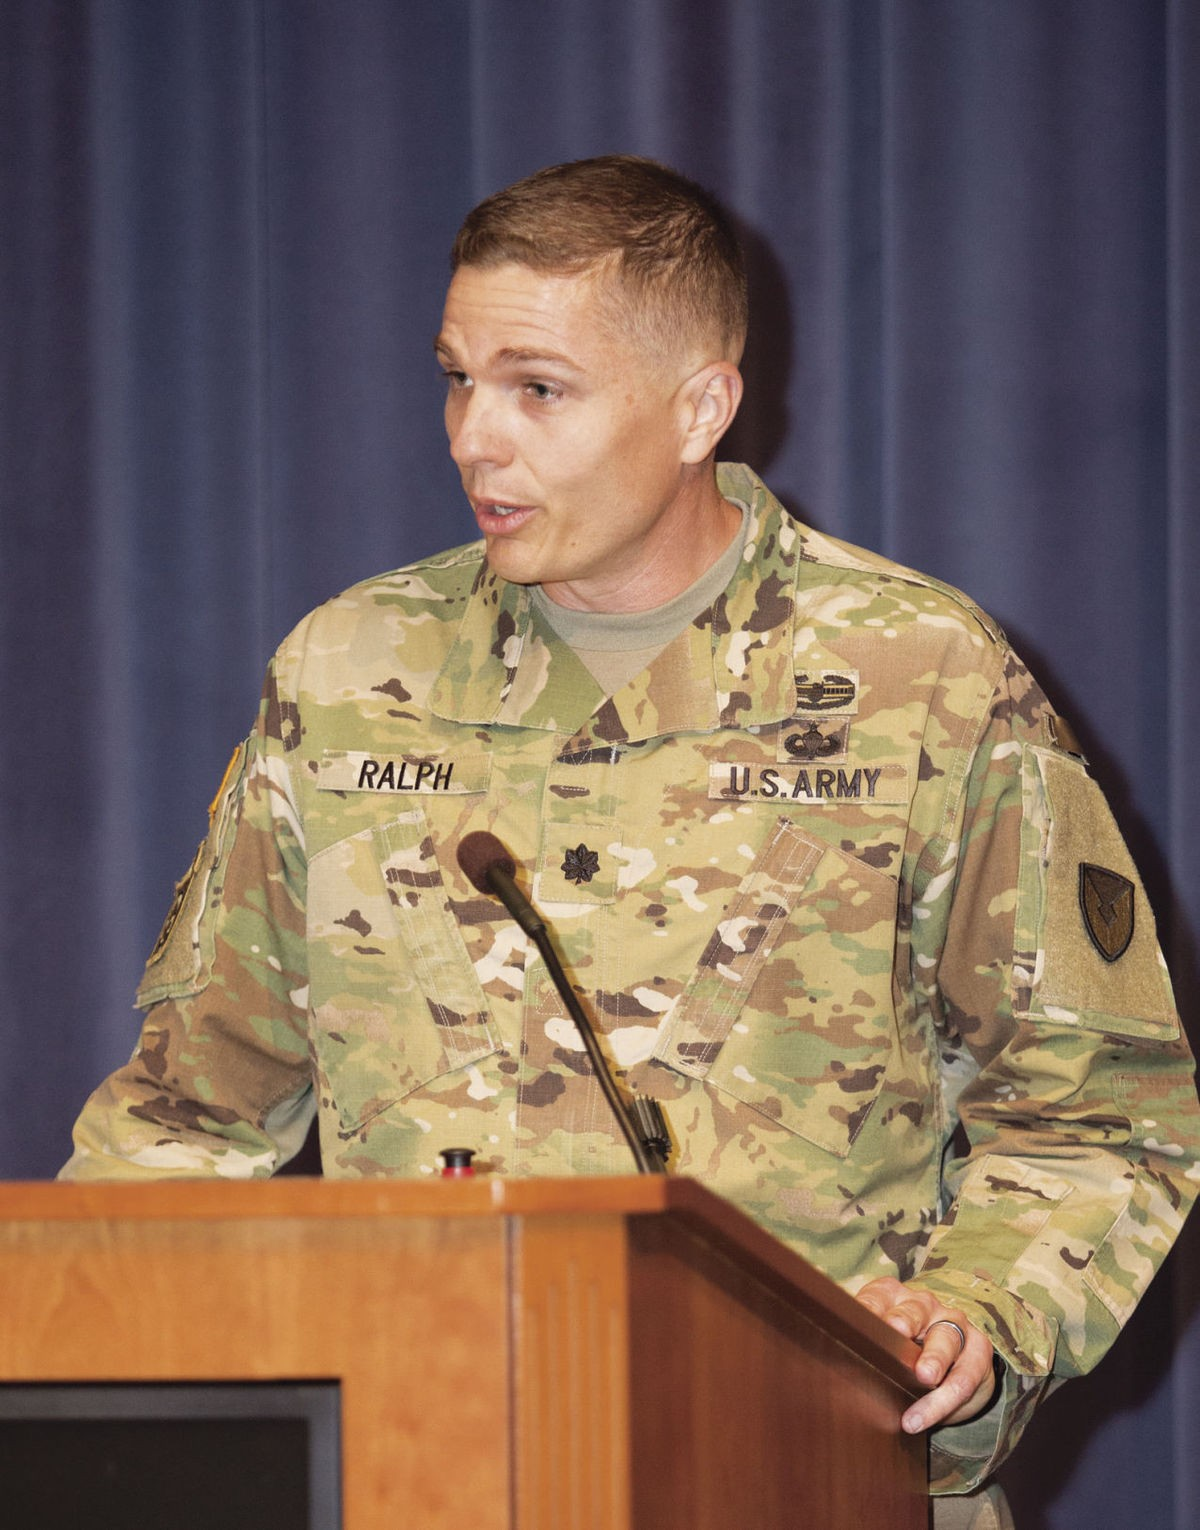 Micc Fort Belvoir Welcomes New Leader Article The